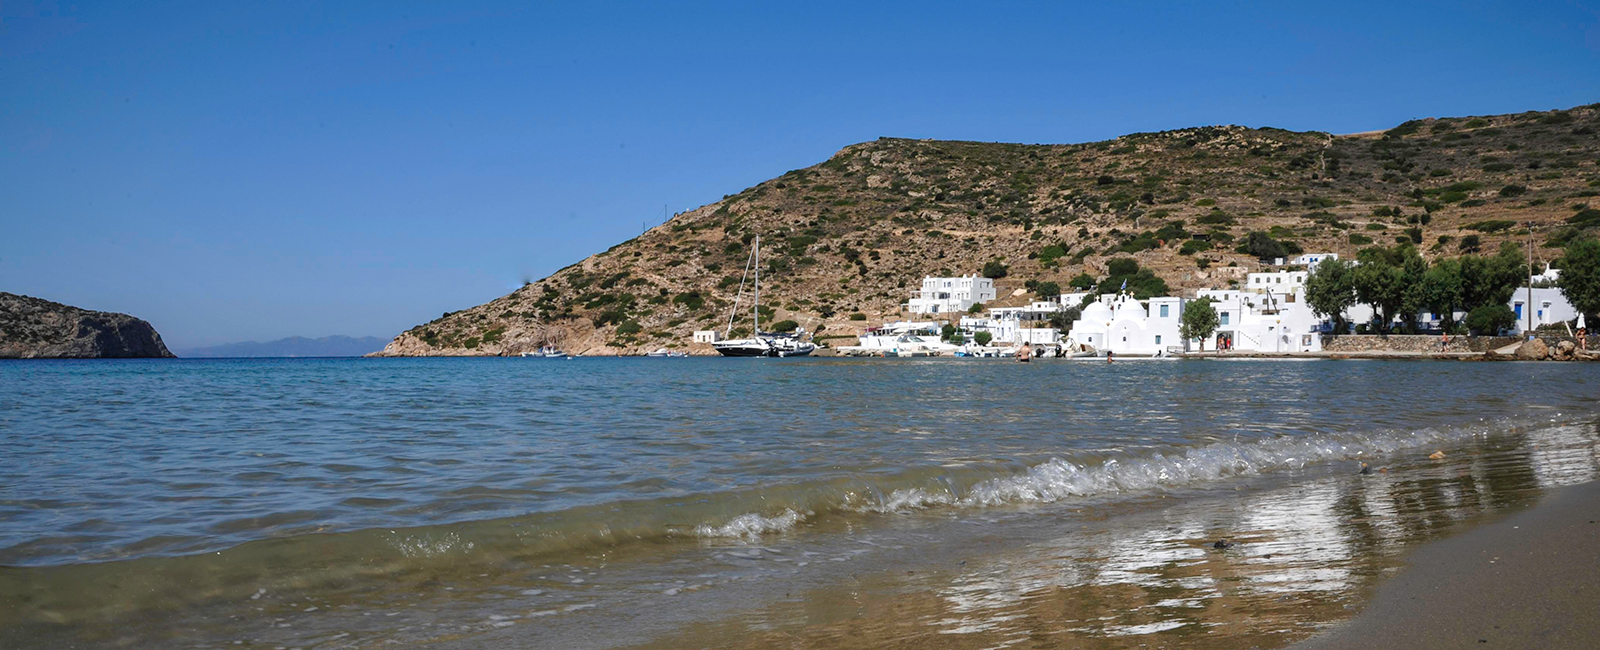 The village of Vathi in Sifnos